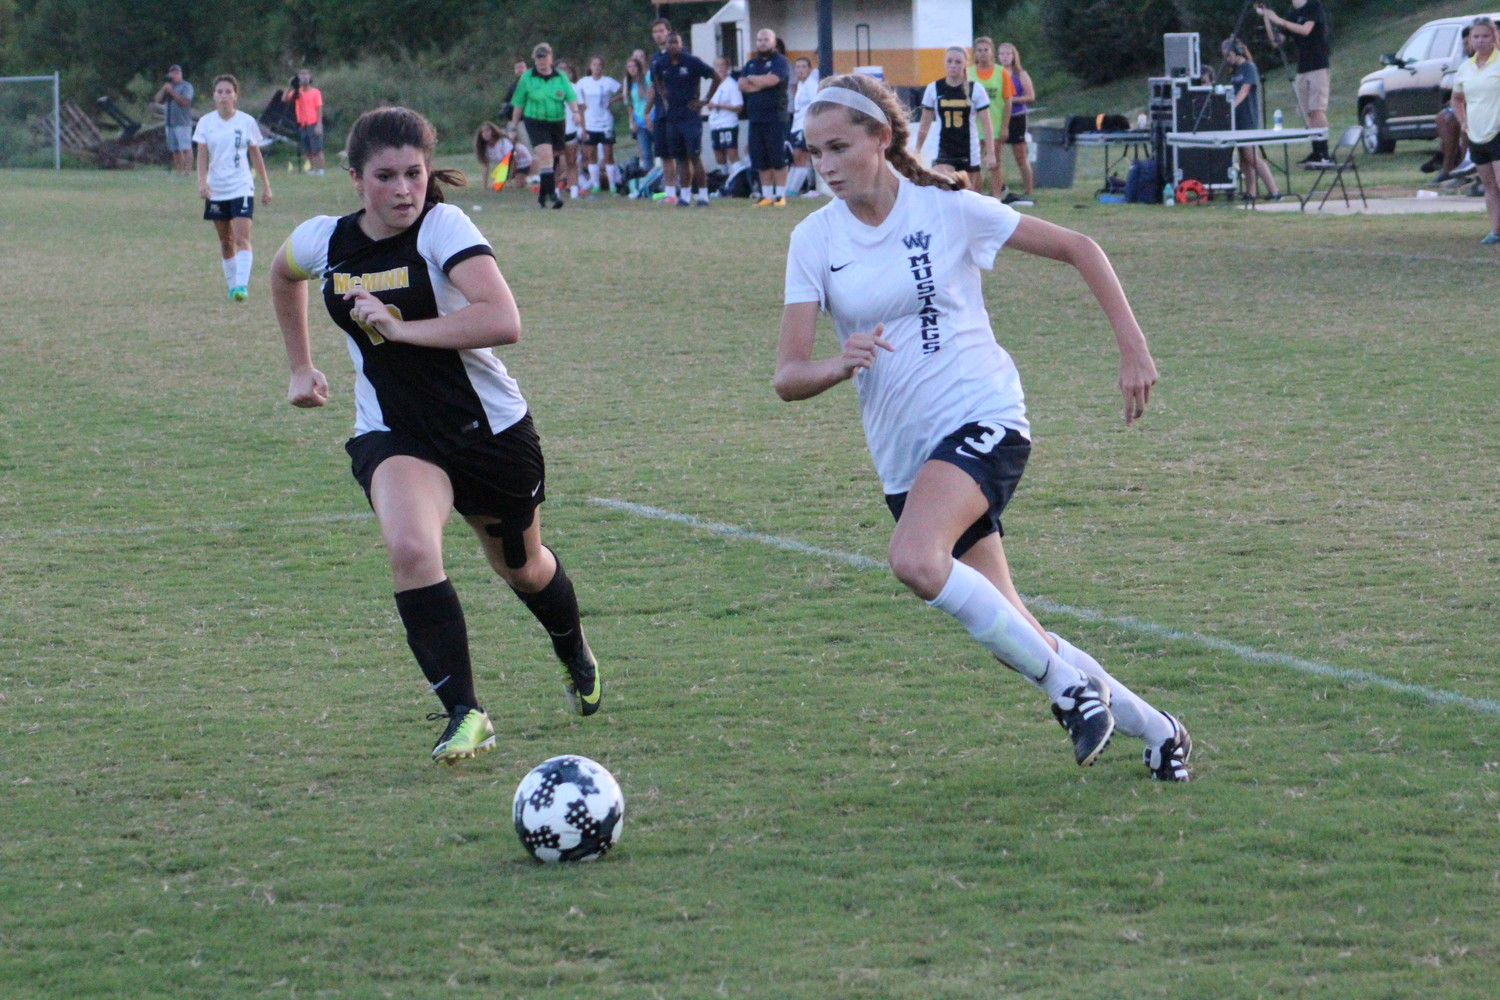 WALKER VALLEY senior Taylor Ellis has scored 25 goals this season and looks to help lead her regular season district championship squad to more success this postseason. The District 5-AAA soccer tournament begins Saturday night.